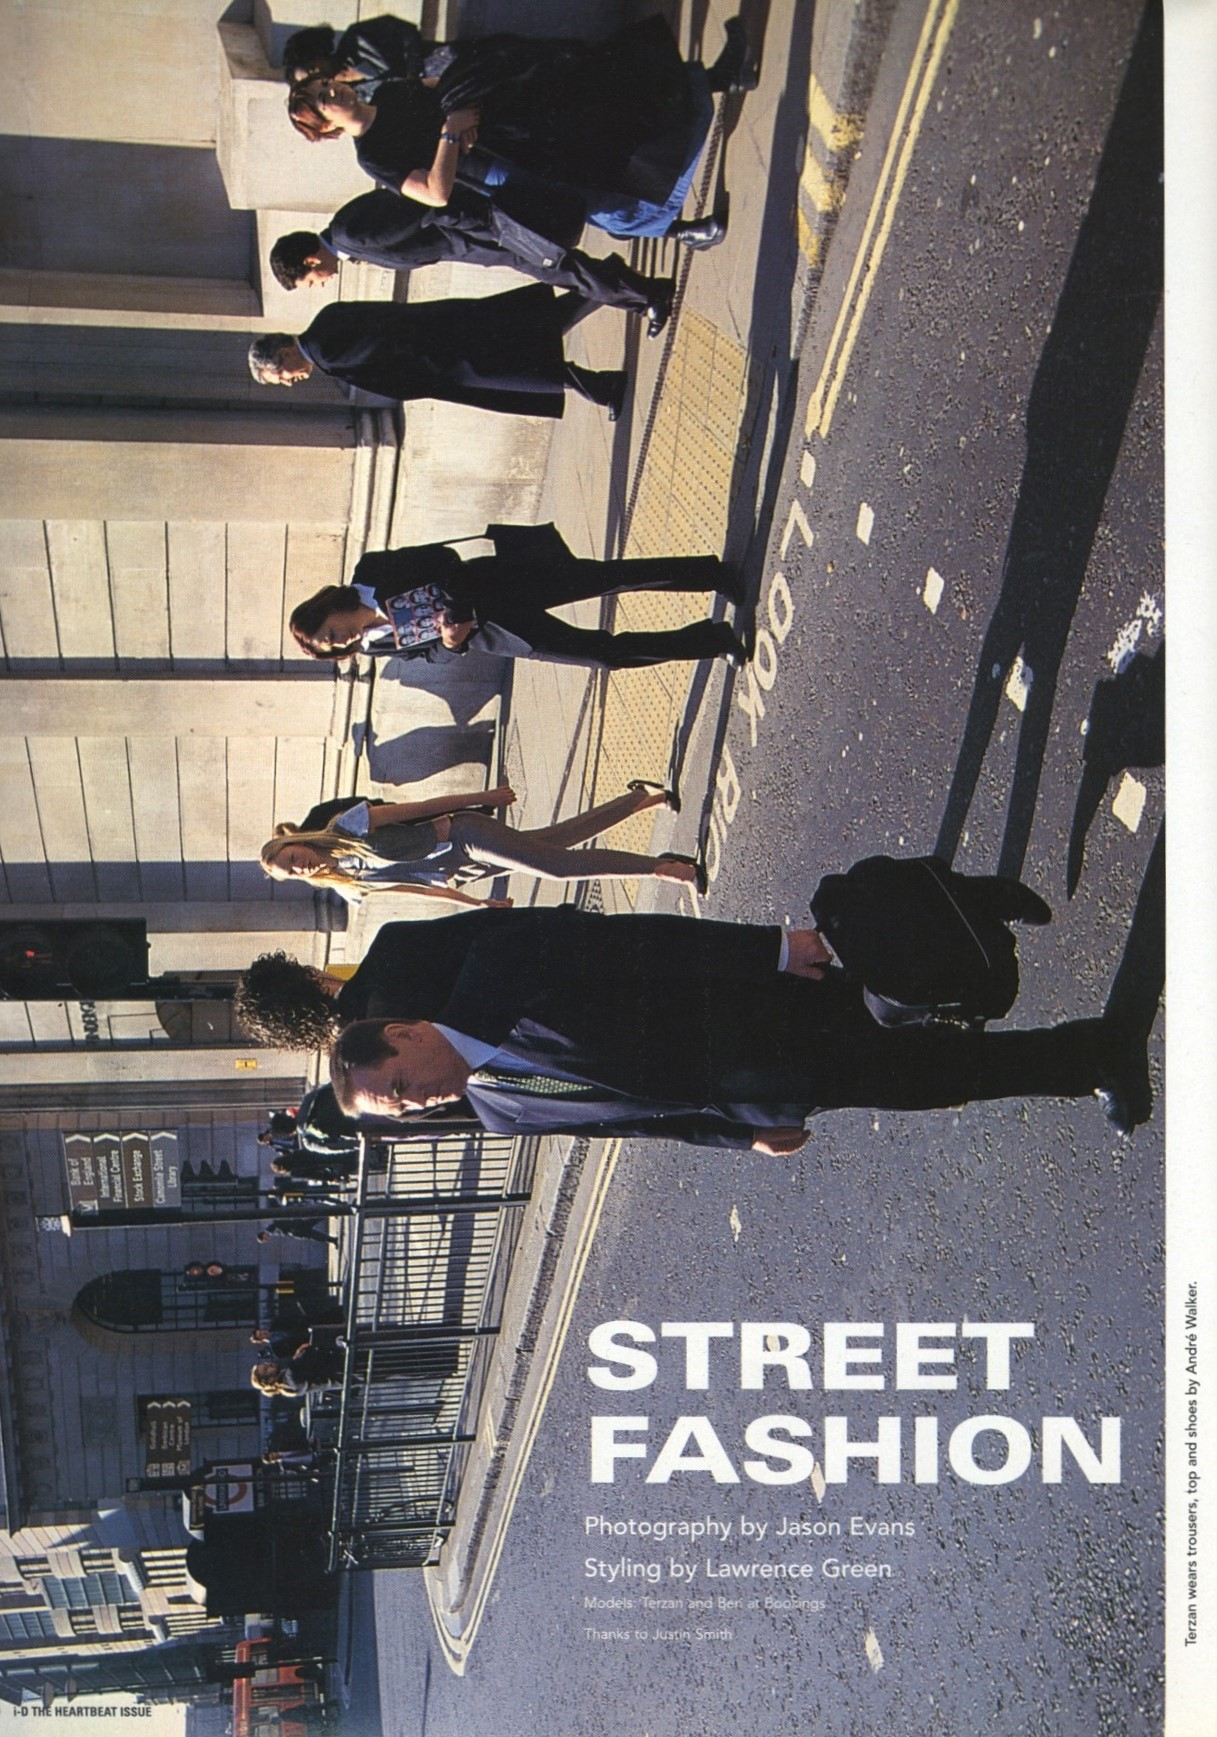 STREET FASHION | PHOTOGRAPHY JASON EVANS | i-D MAGAZINE NO.199 | THE HEARTBEAT ISSUE | JULY 2000